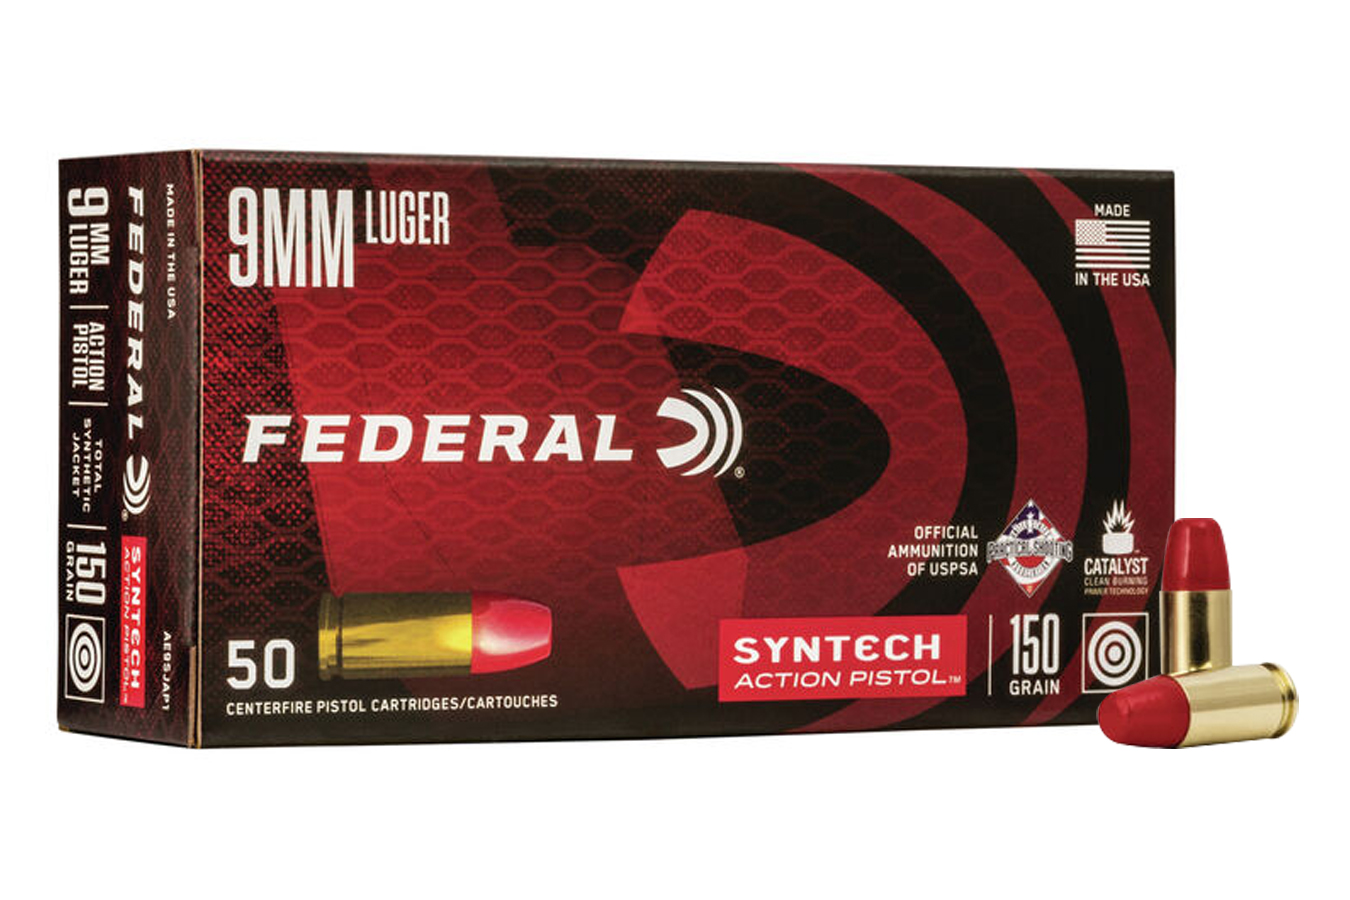 9MM 150 GR TOTAL SYNTHETIC JACKET ACTION PISTOL